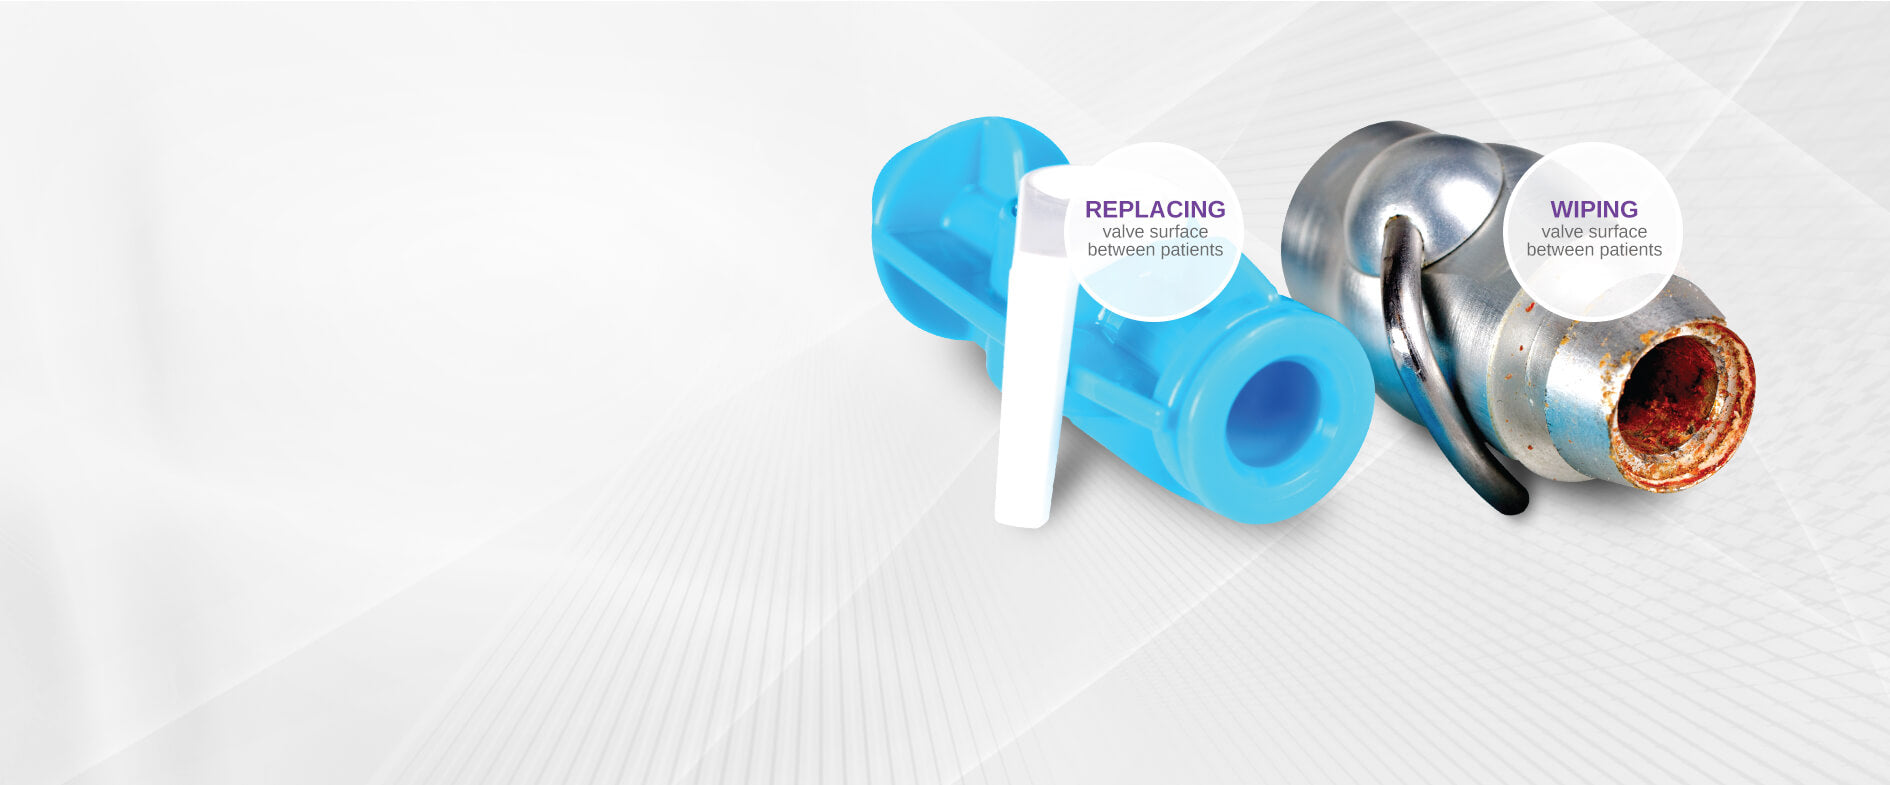 PROTECT PATIENTS WITH DOVE DISPOSABLE VALVES